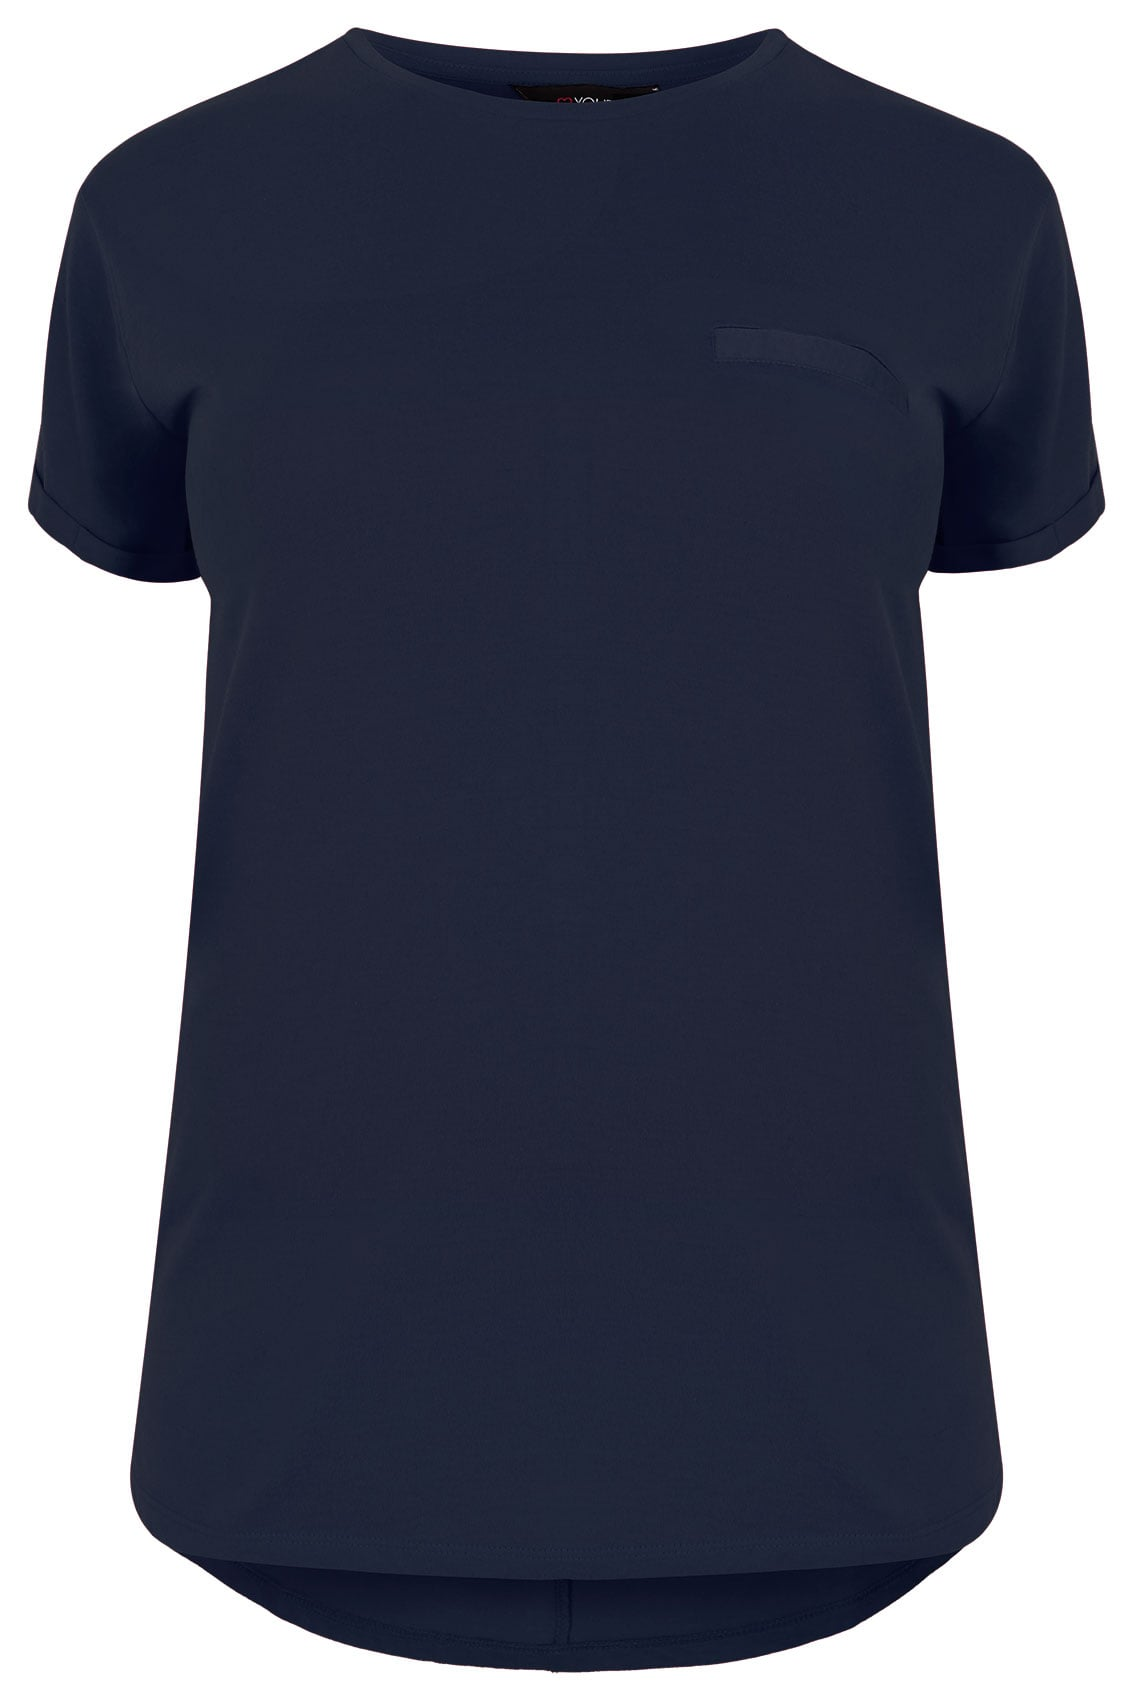 Navy Pocket T Shirt With Curved Hem Plus Size 16 To 36